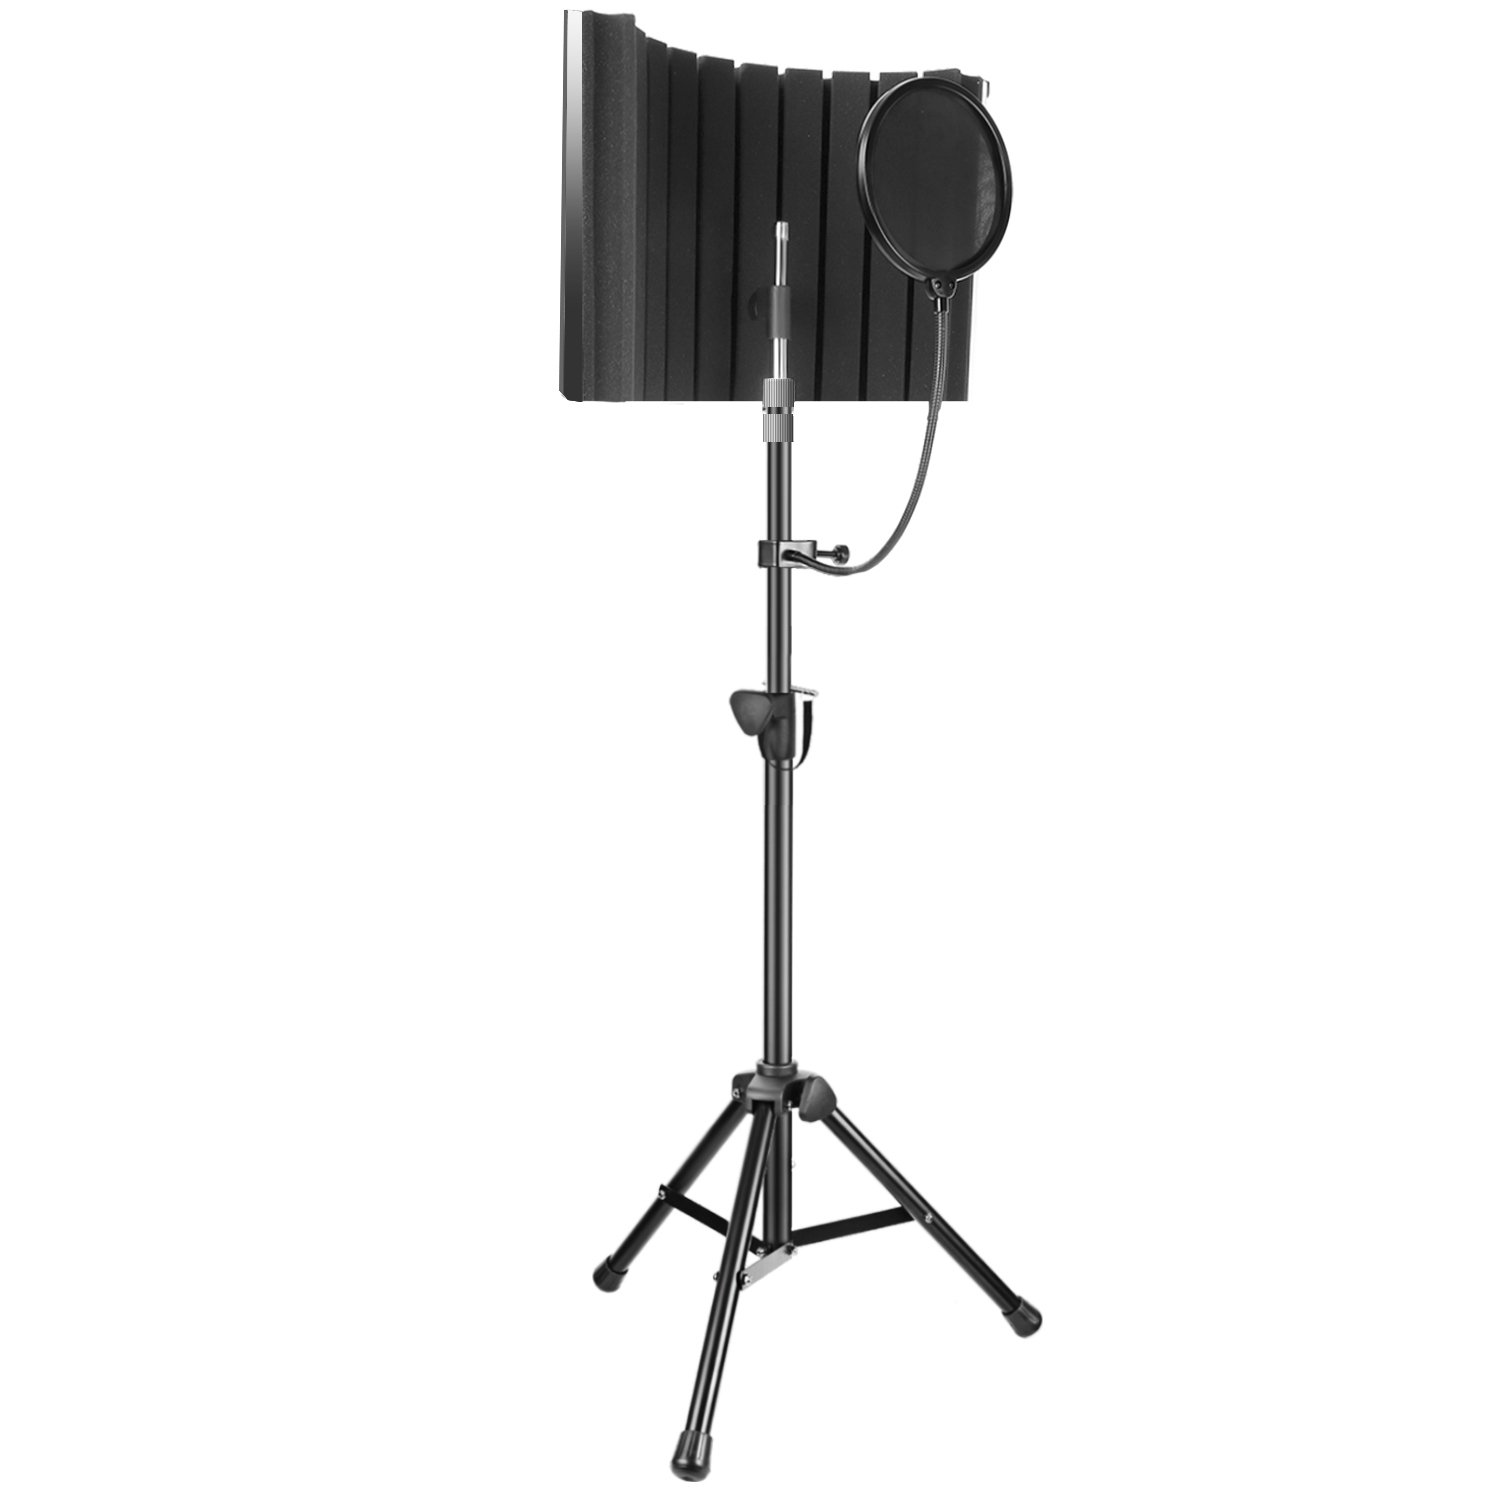 Neewer Professional Microphone Studio Recording Accessories Include: NW-5 Microphone Isolation Panel, Adjustable Wind Screen Bracket Stand and Pop Filter for Vocal Acoustic Recording and Podcasting 90090339